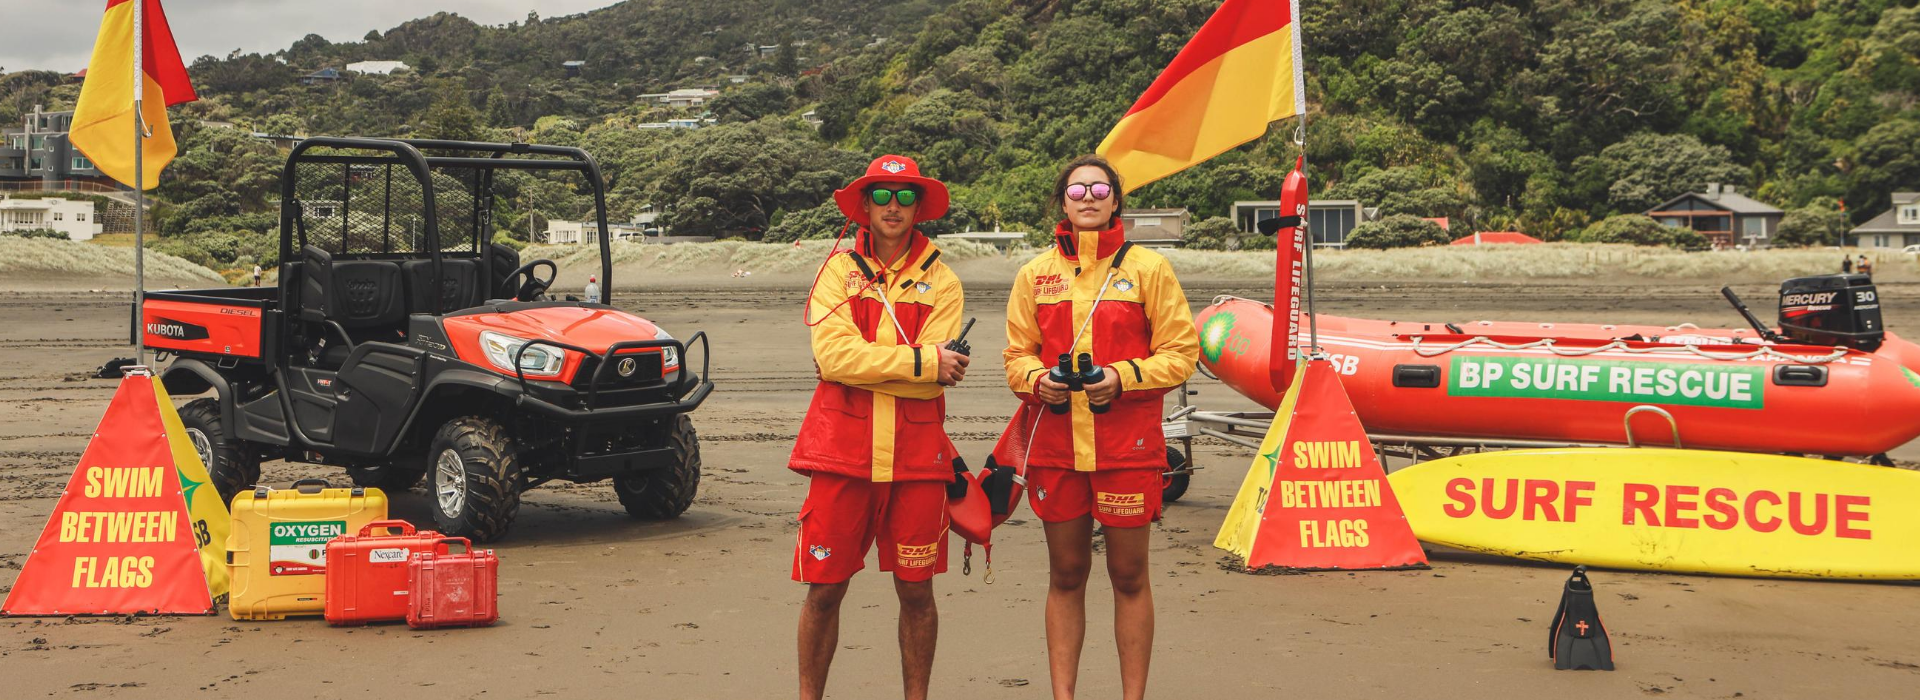 Male Female Lifeguards with all lifesaving equipment 1